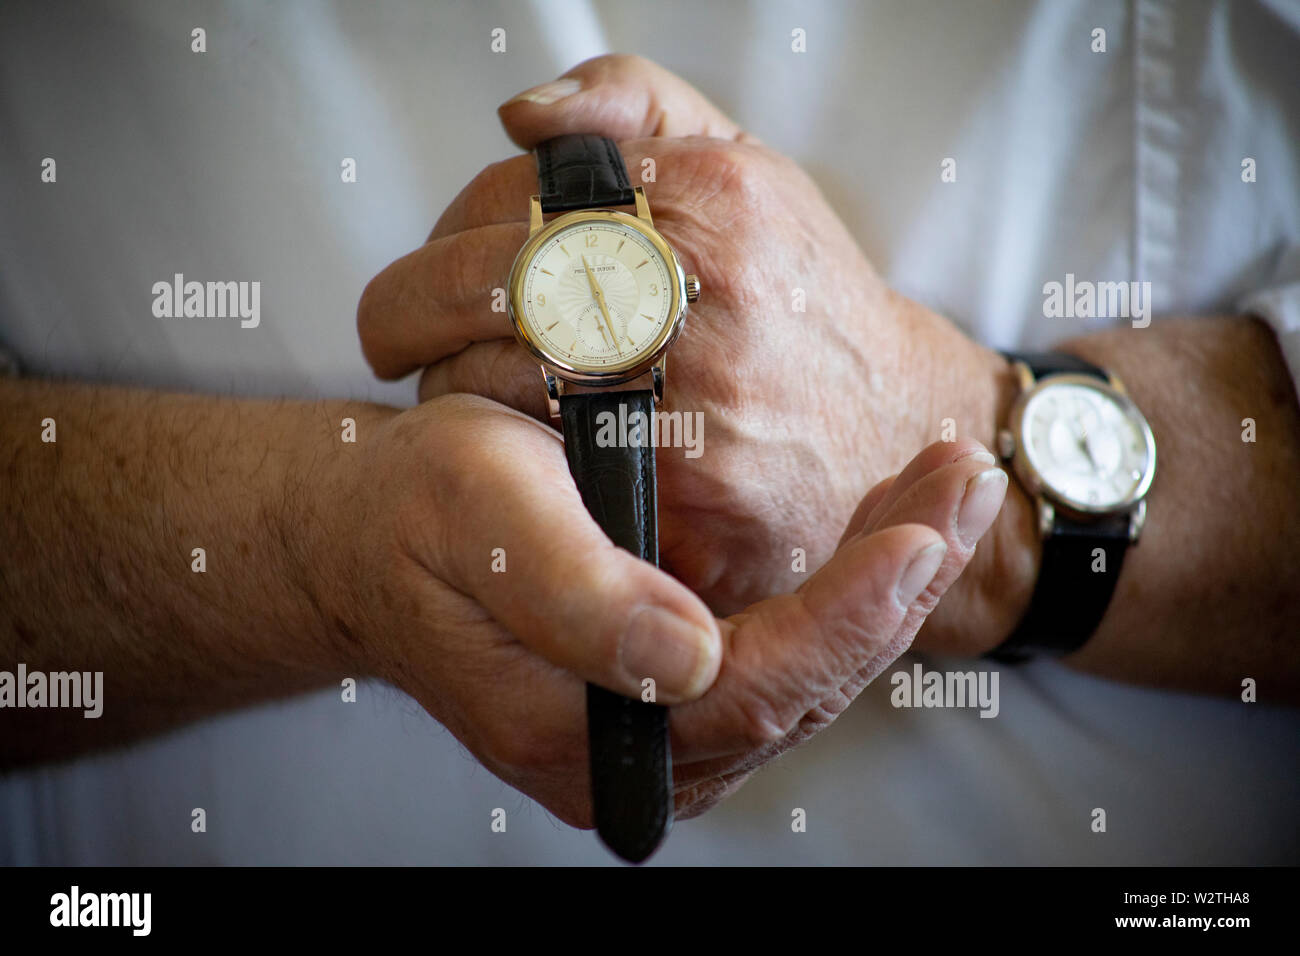 """The watch «Simplicity» is regarded by many to be the reference for mechanical watches. The secret is in the details, the rounded edges, the finish. The man behind the watch, Philippe Dufour, sees himself as a bit of a troublemaker in the industry. """"Watchmakers like me demonstrate for the customers how good a mechanical watch can get,"""" he says. - Stock Image"""